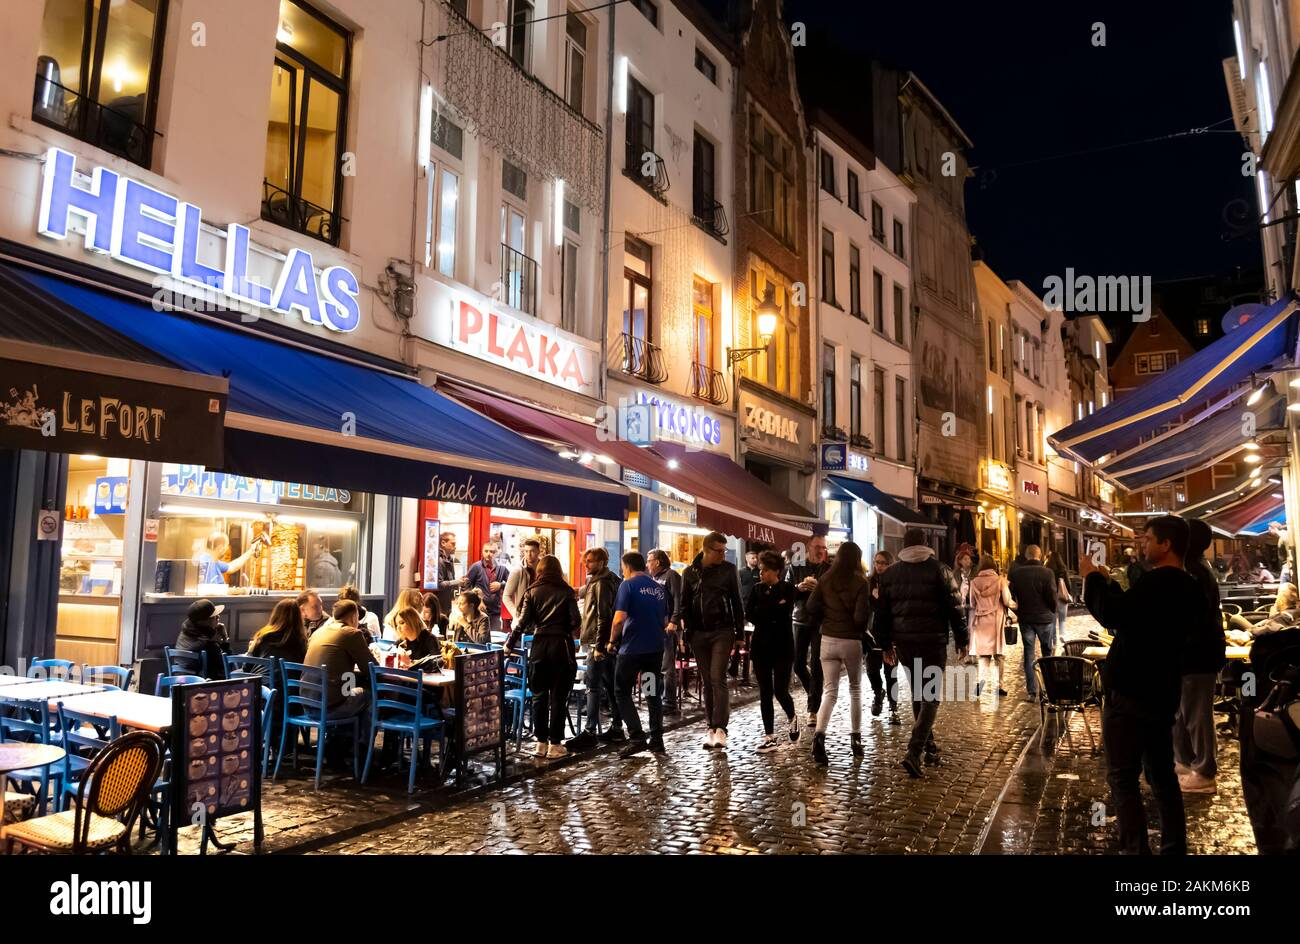 Greek cafes line the street in the historic old town of Brussels Belgium on a rainy late night in the busy, crowded urban center. Stock Photo